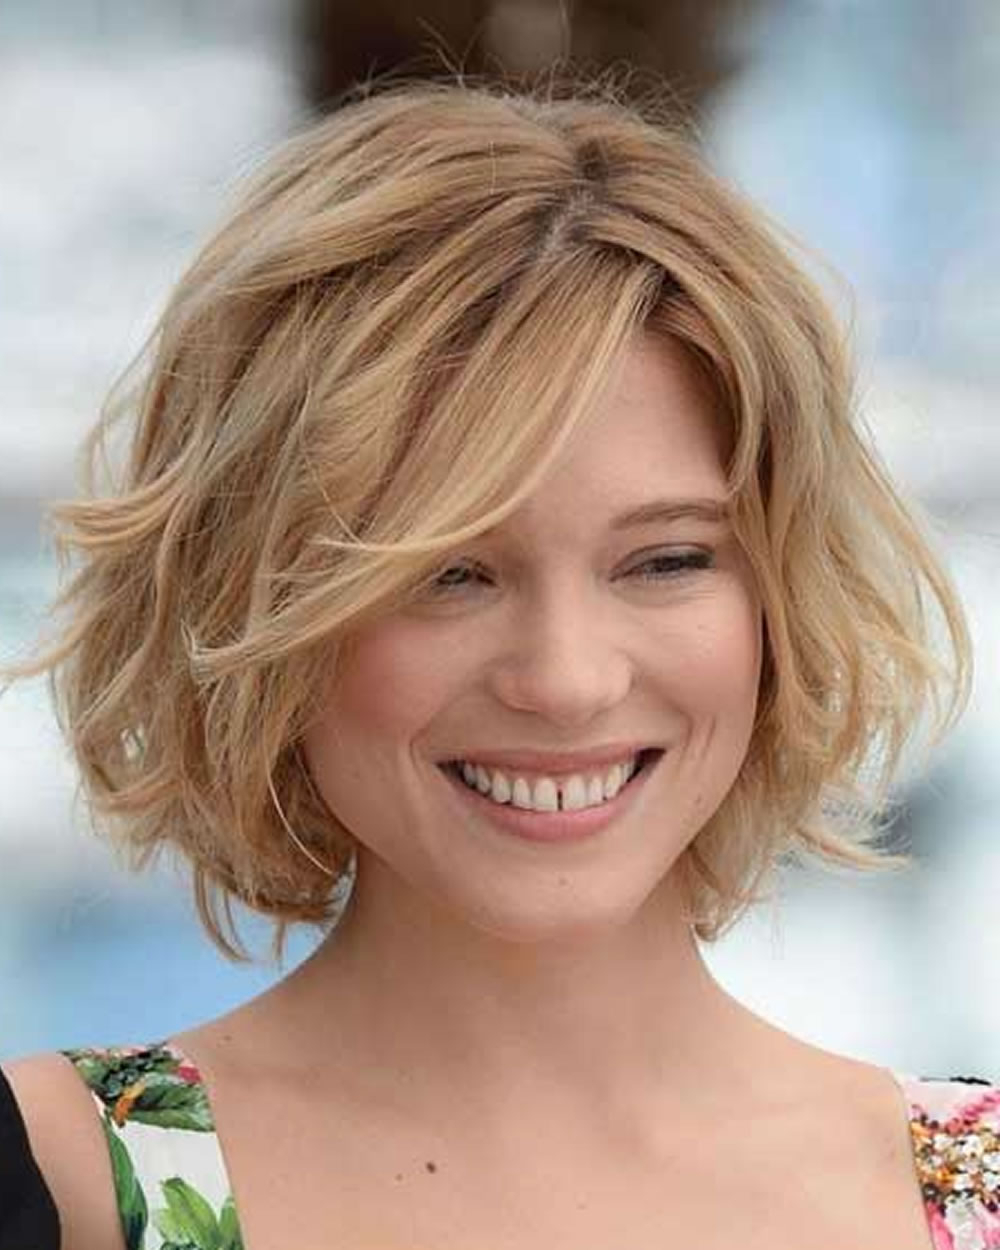 Curly & Wavy Short Hairstyles And Haircuts For Ladies 2018 2019 With Regard To Short Haircuts For Wavy Hair And Round Faces (View 6 of 25)